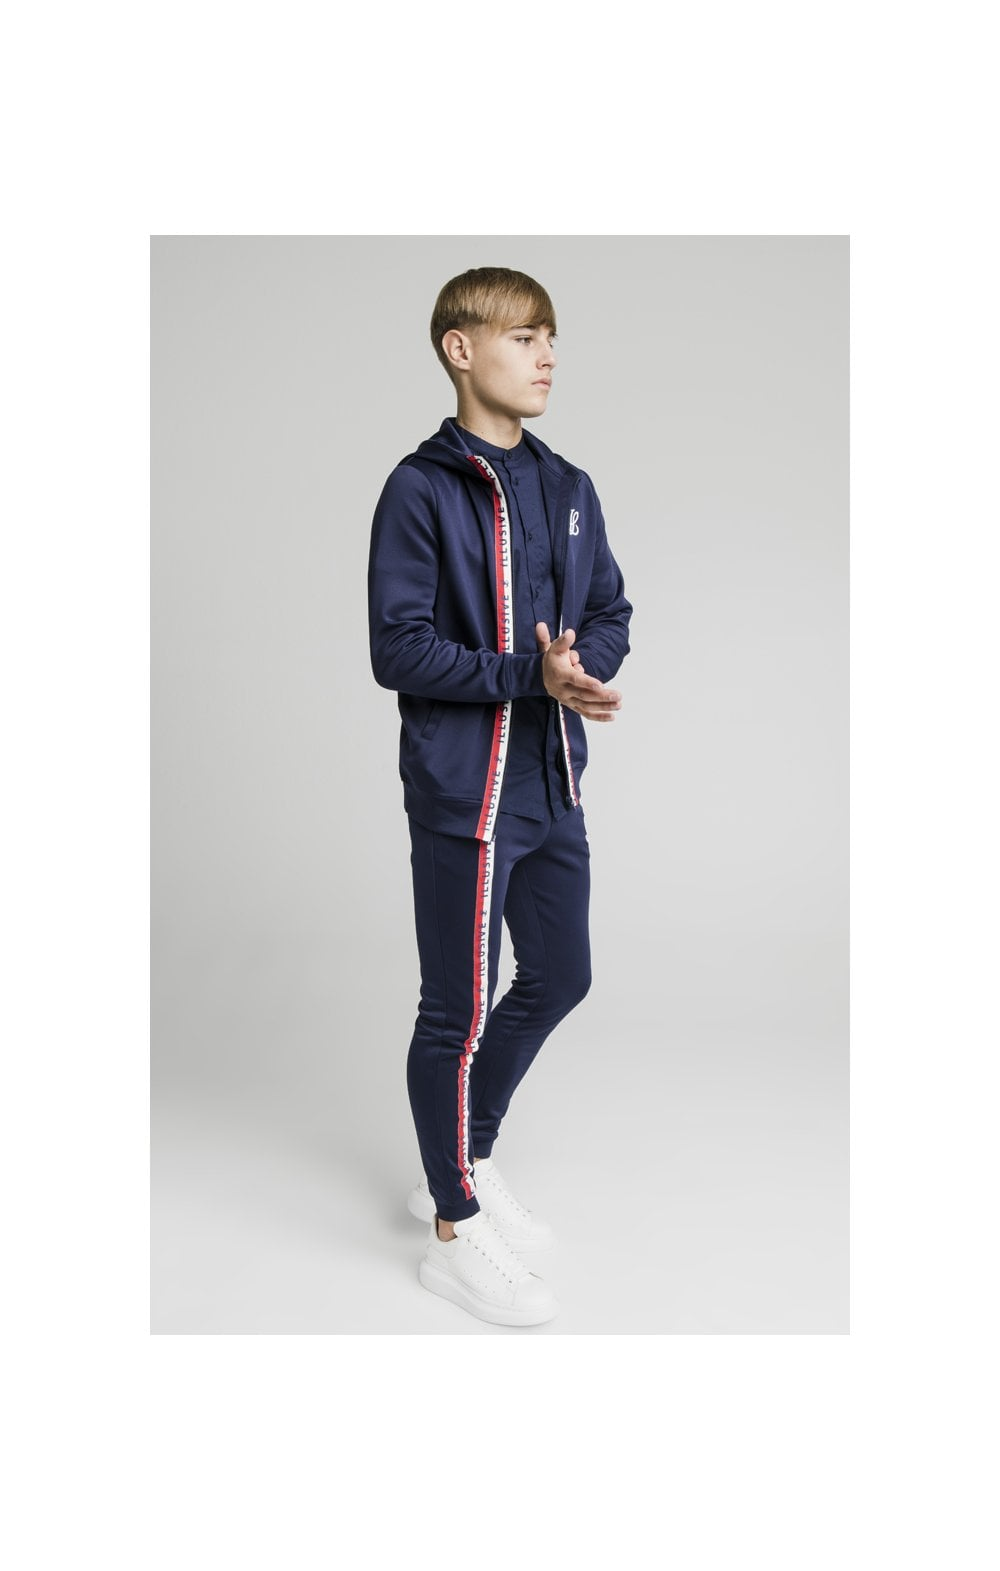 Load image into Gallery viewer, Illusive London Central Tape Zip Through Hoodie - Navy (5)